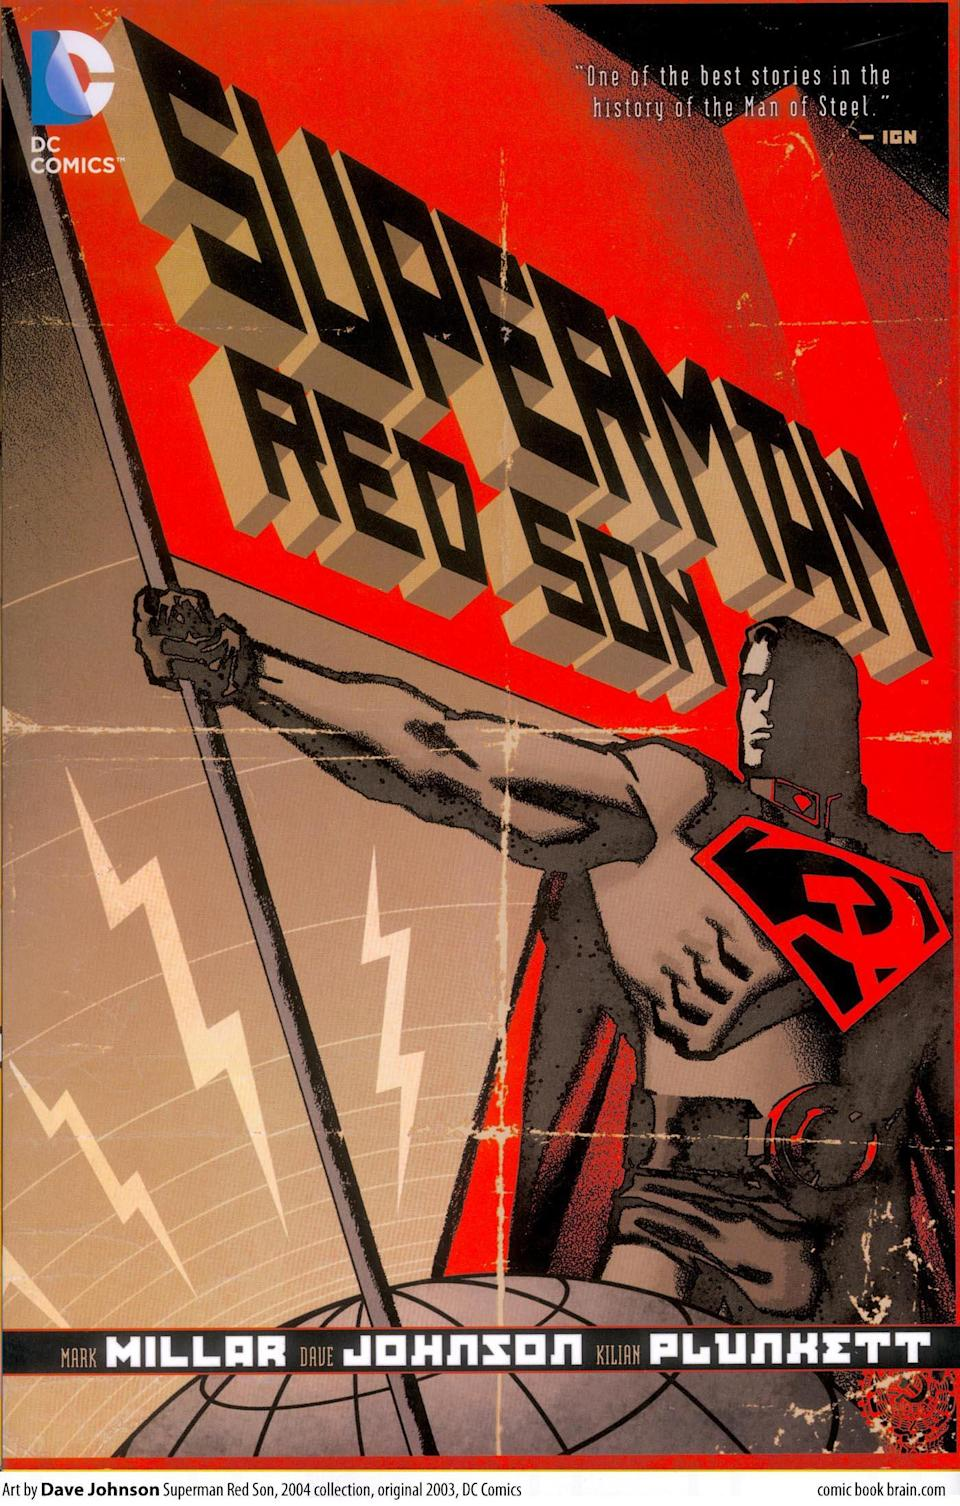 Millar's 'Superman: Red Son' was his most famous DC Comics title